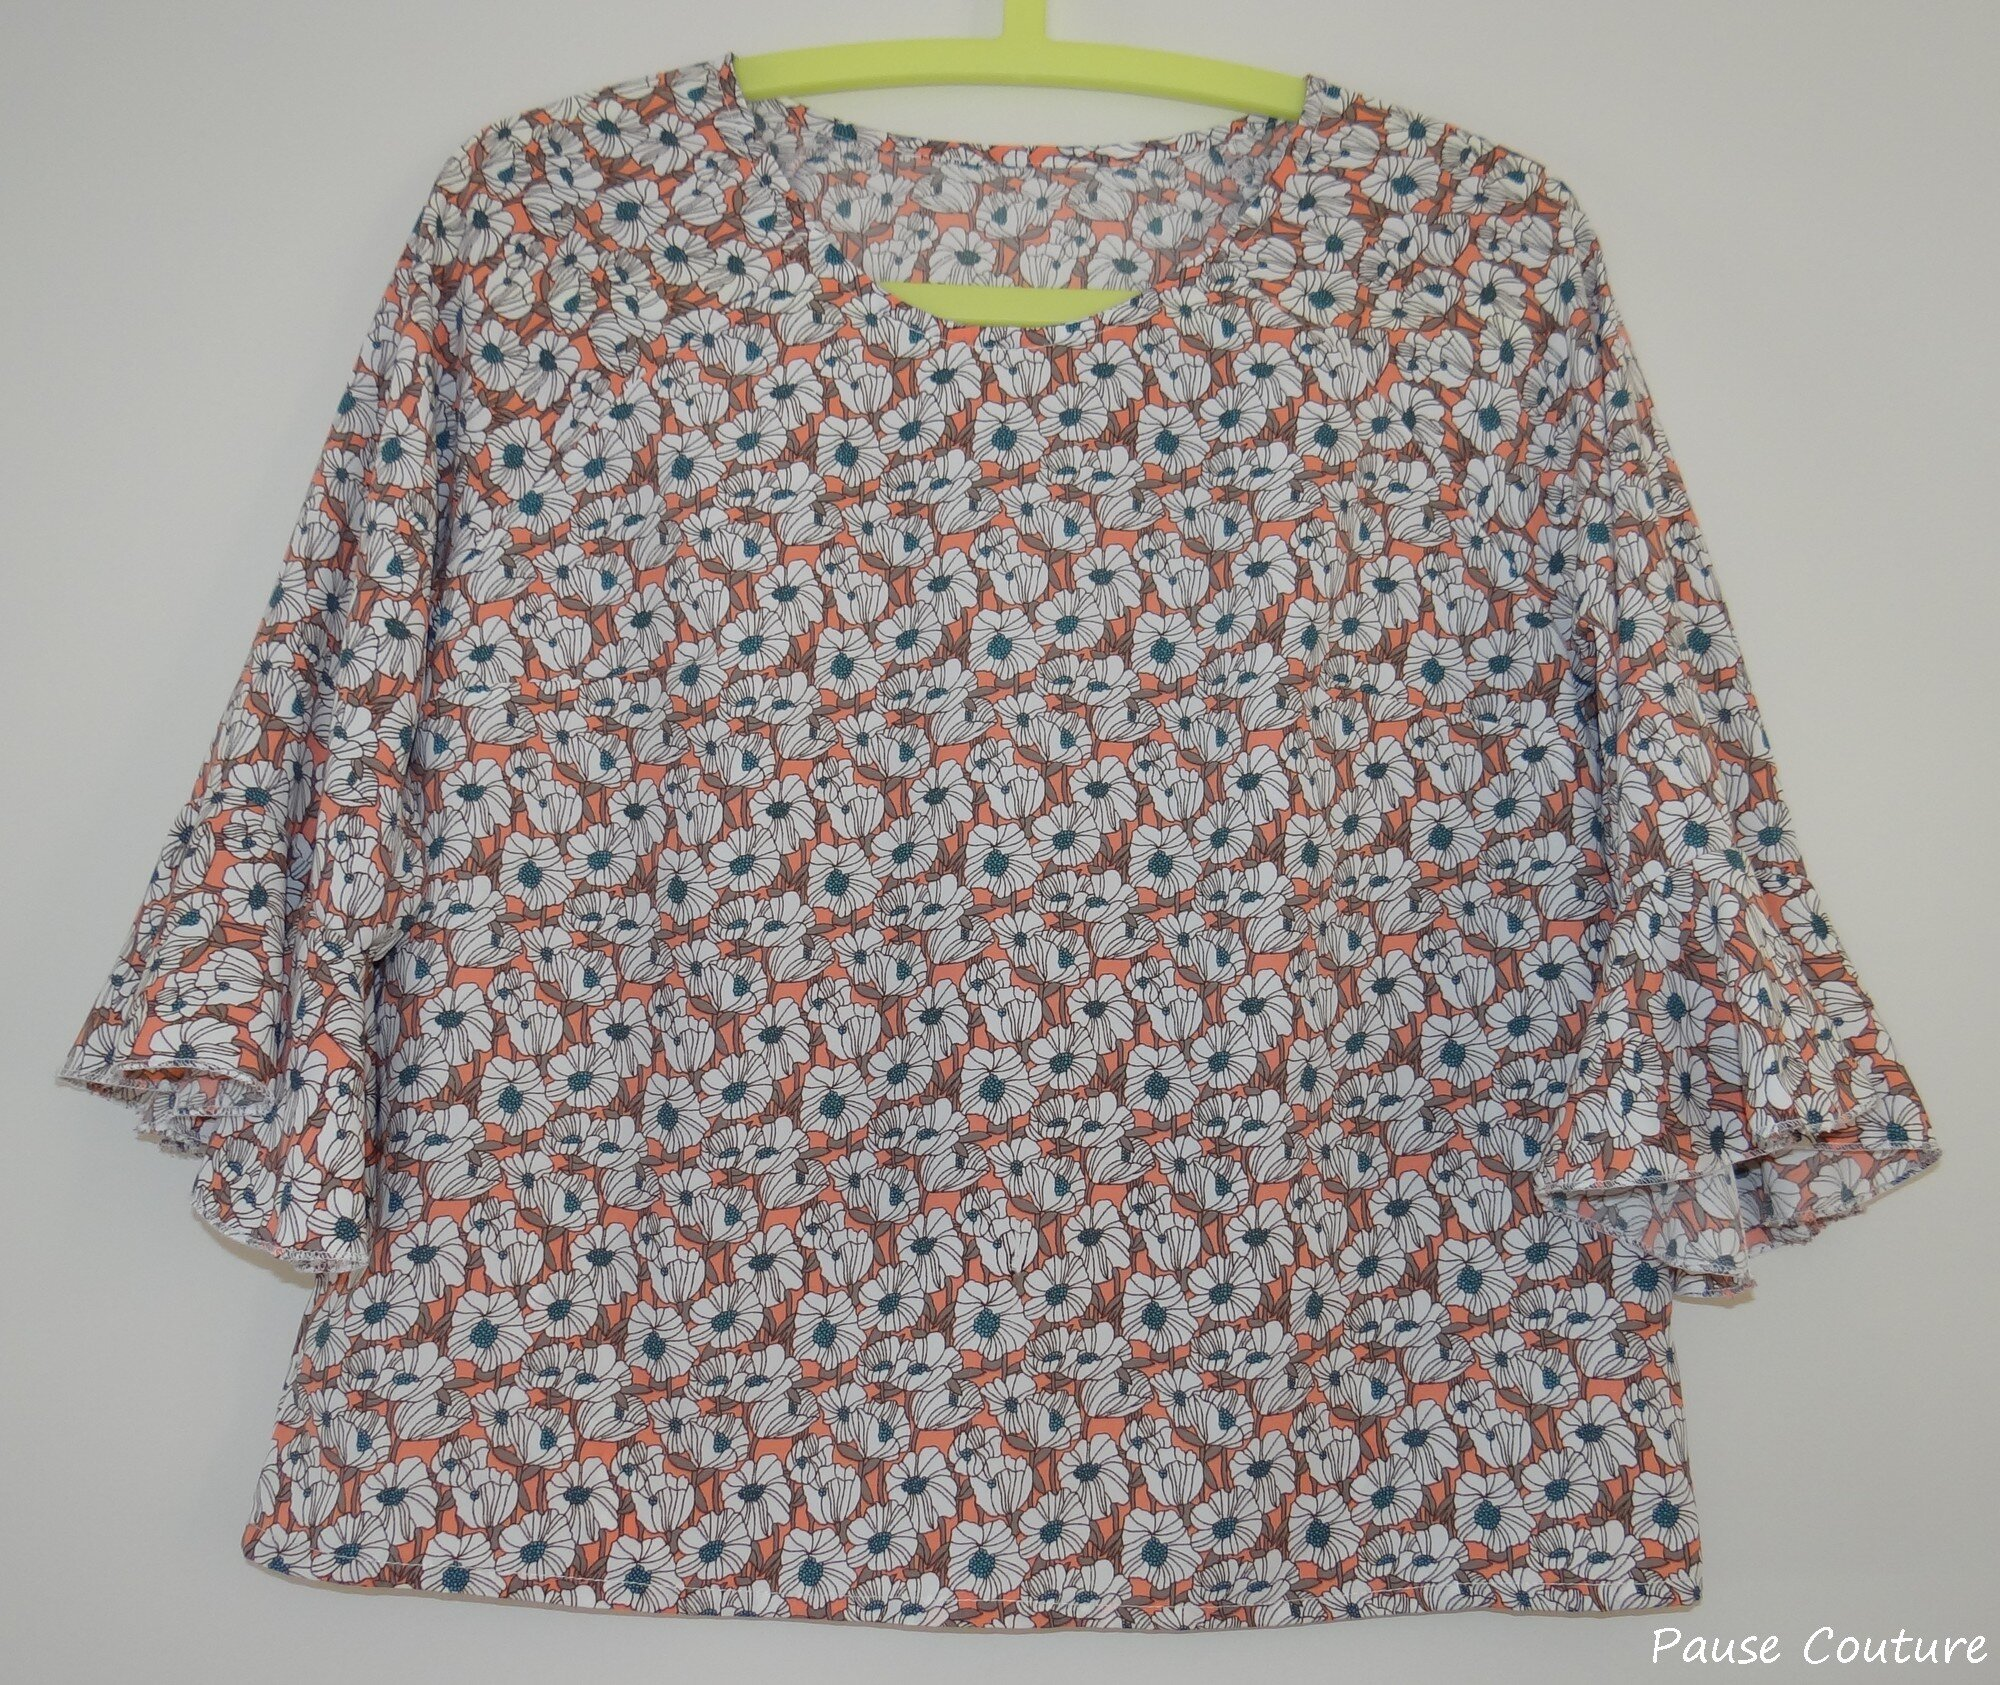 Atelier Stockholm Scammit Blouse Chqdxbtsr Couture Pause nwOX8P0k